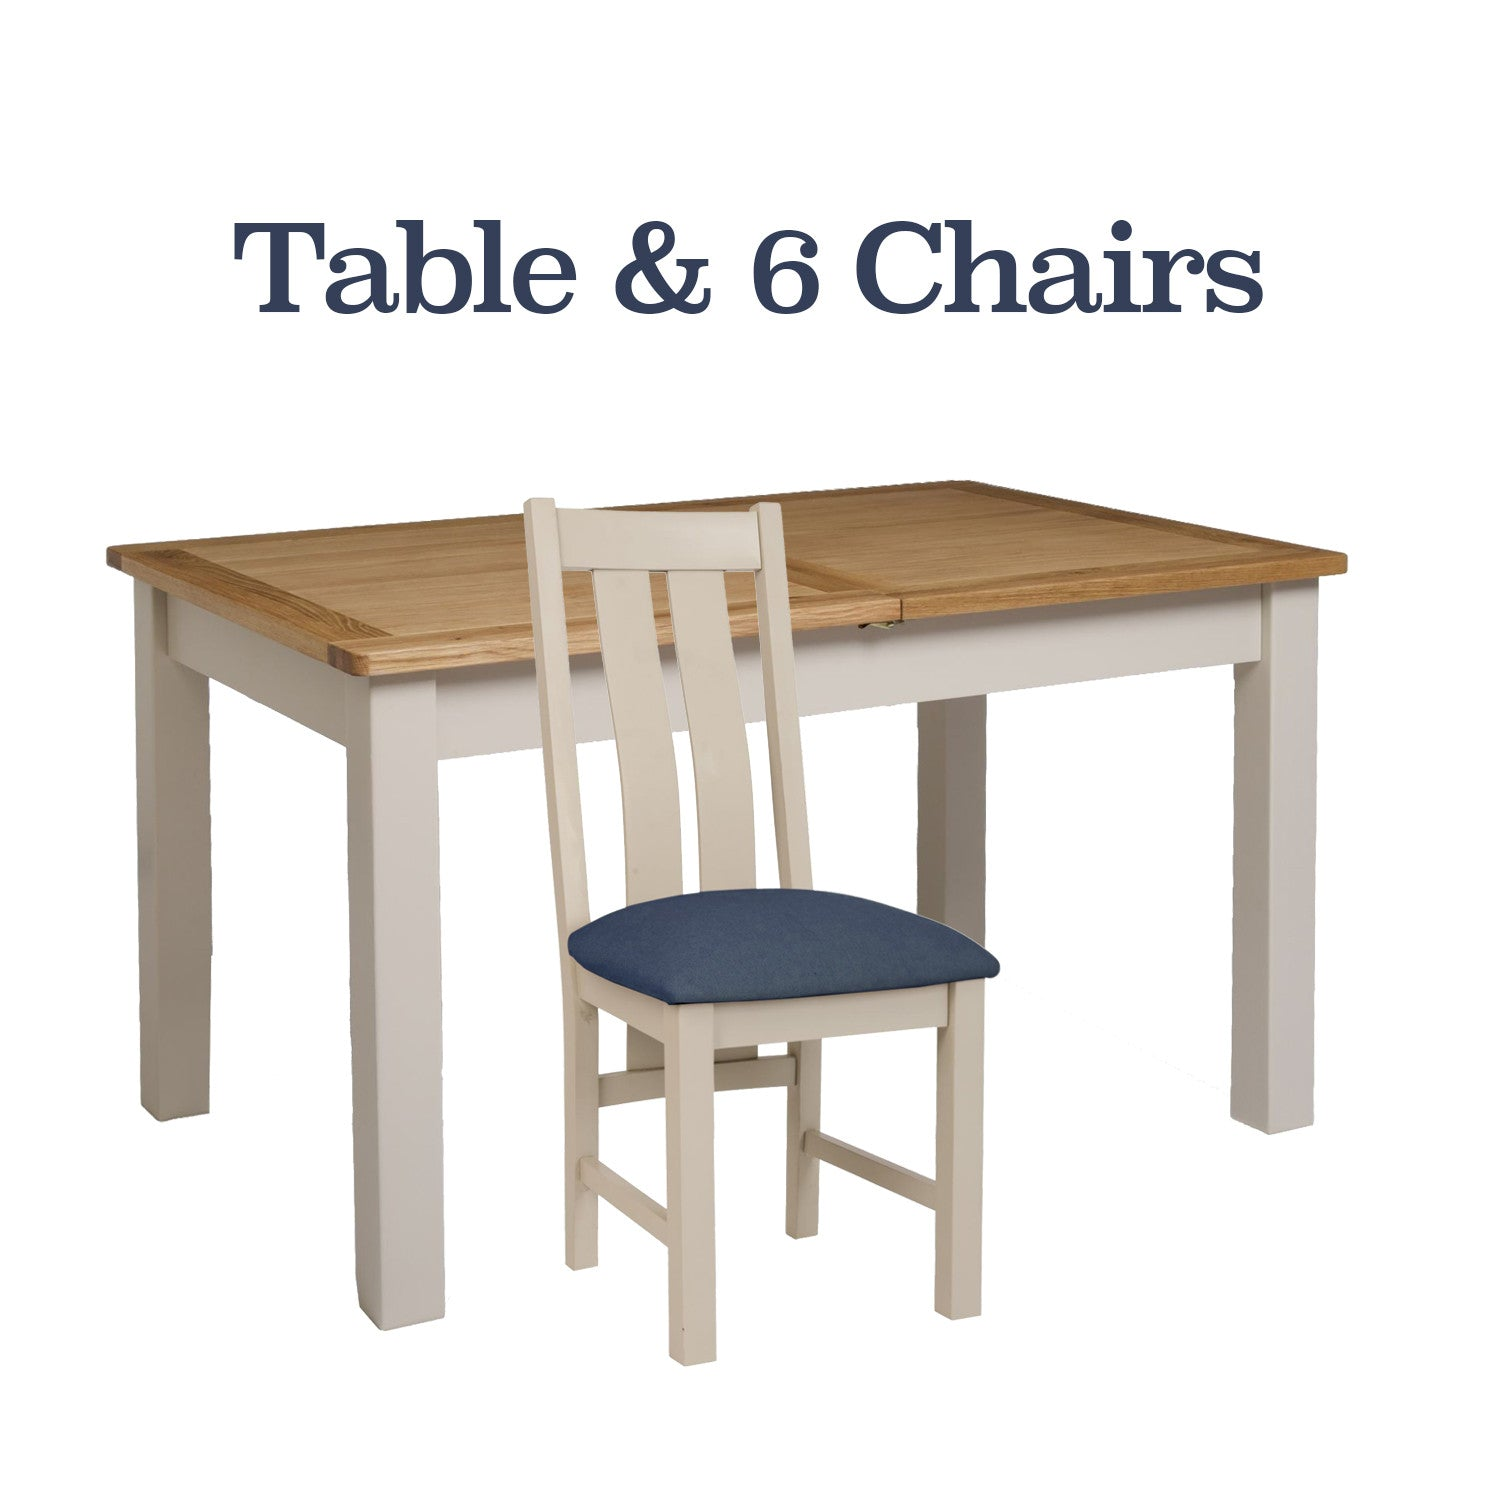 Portland Oak & Painted Dining Table 6 Chairs Package